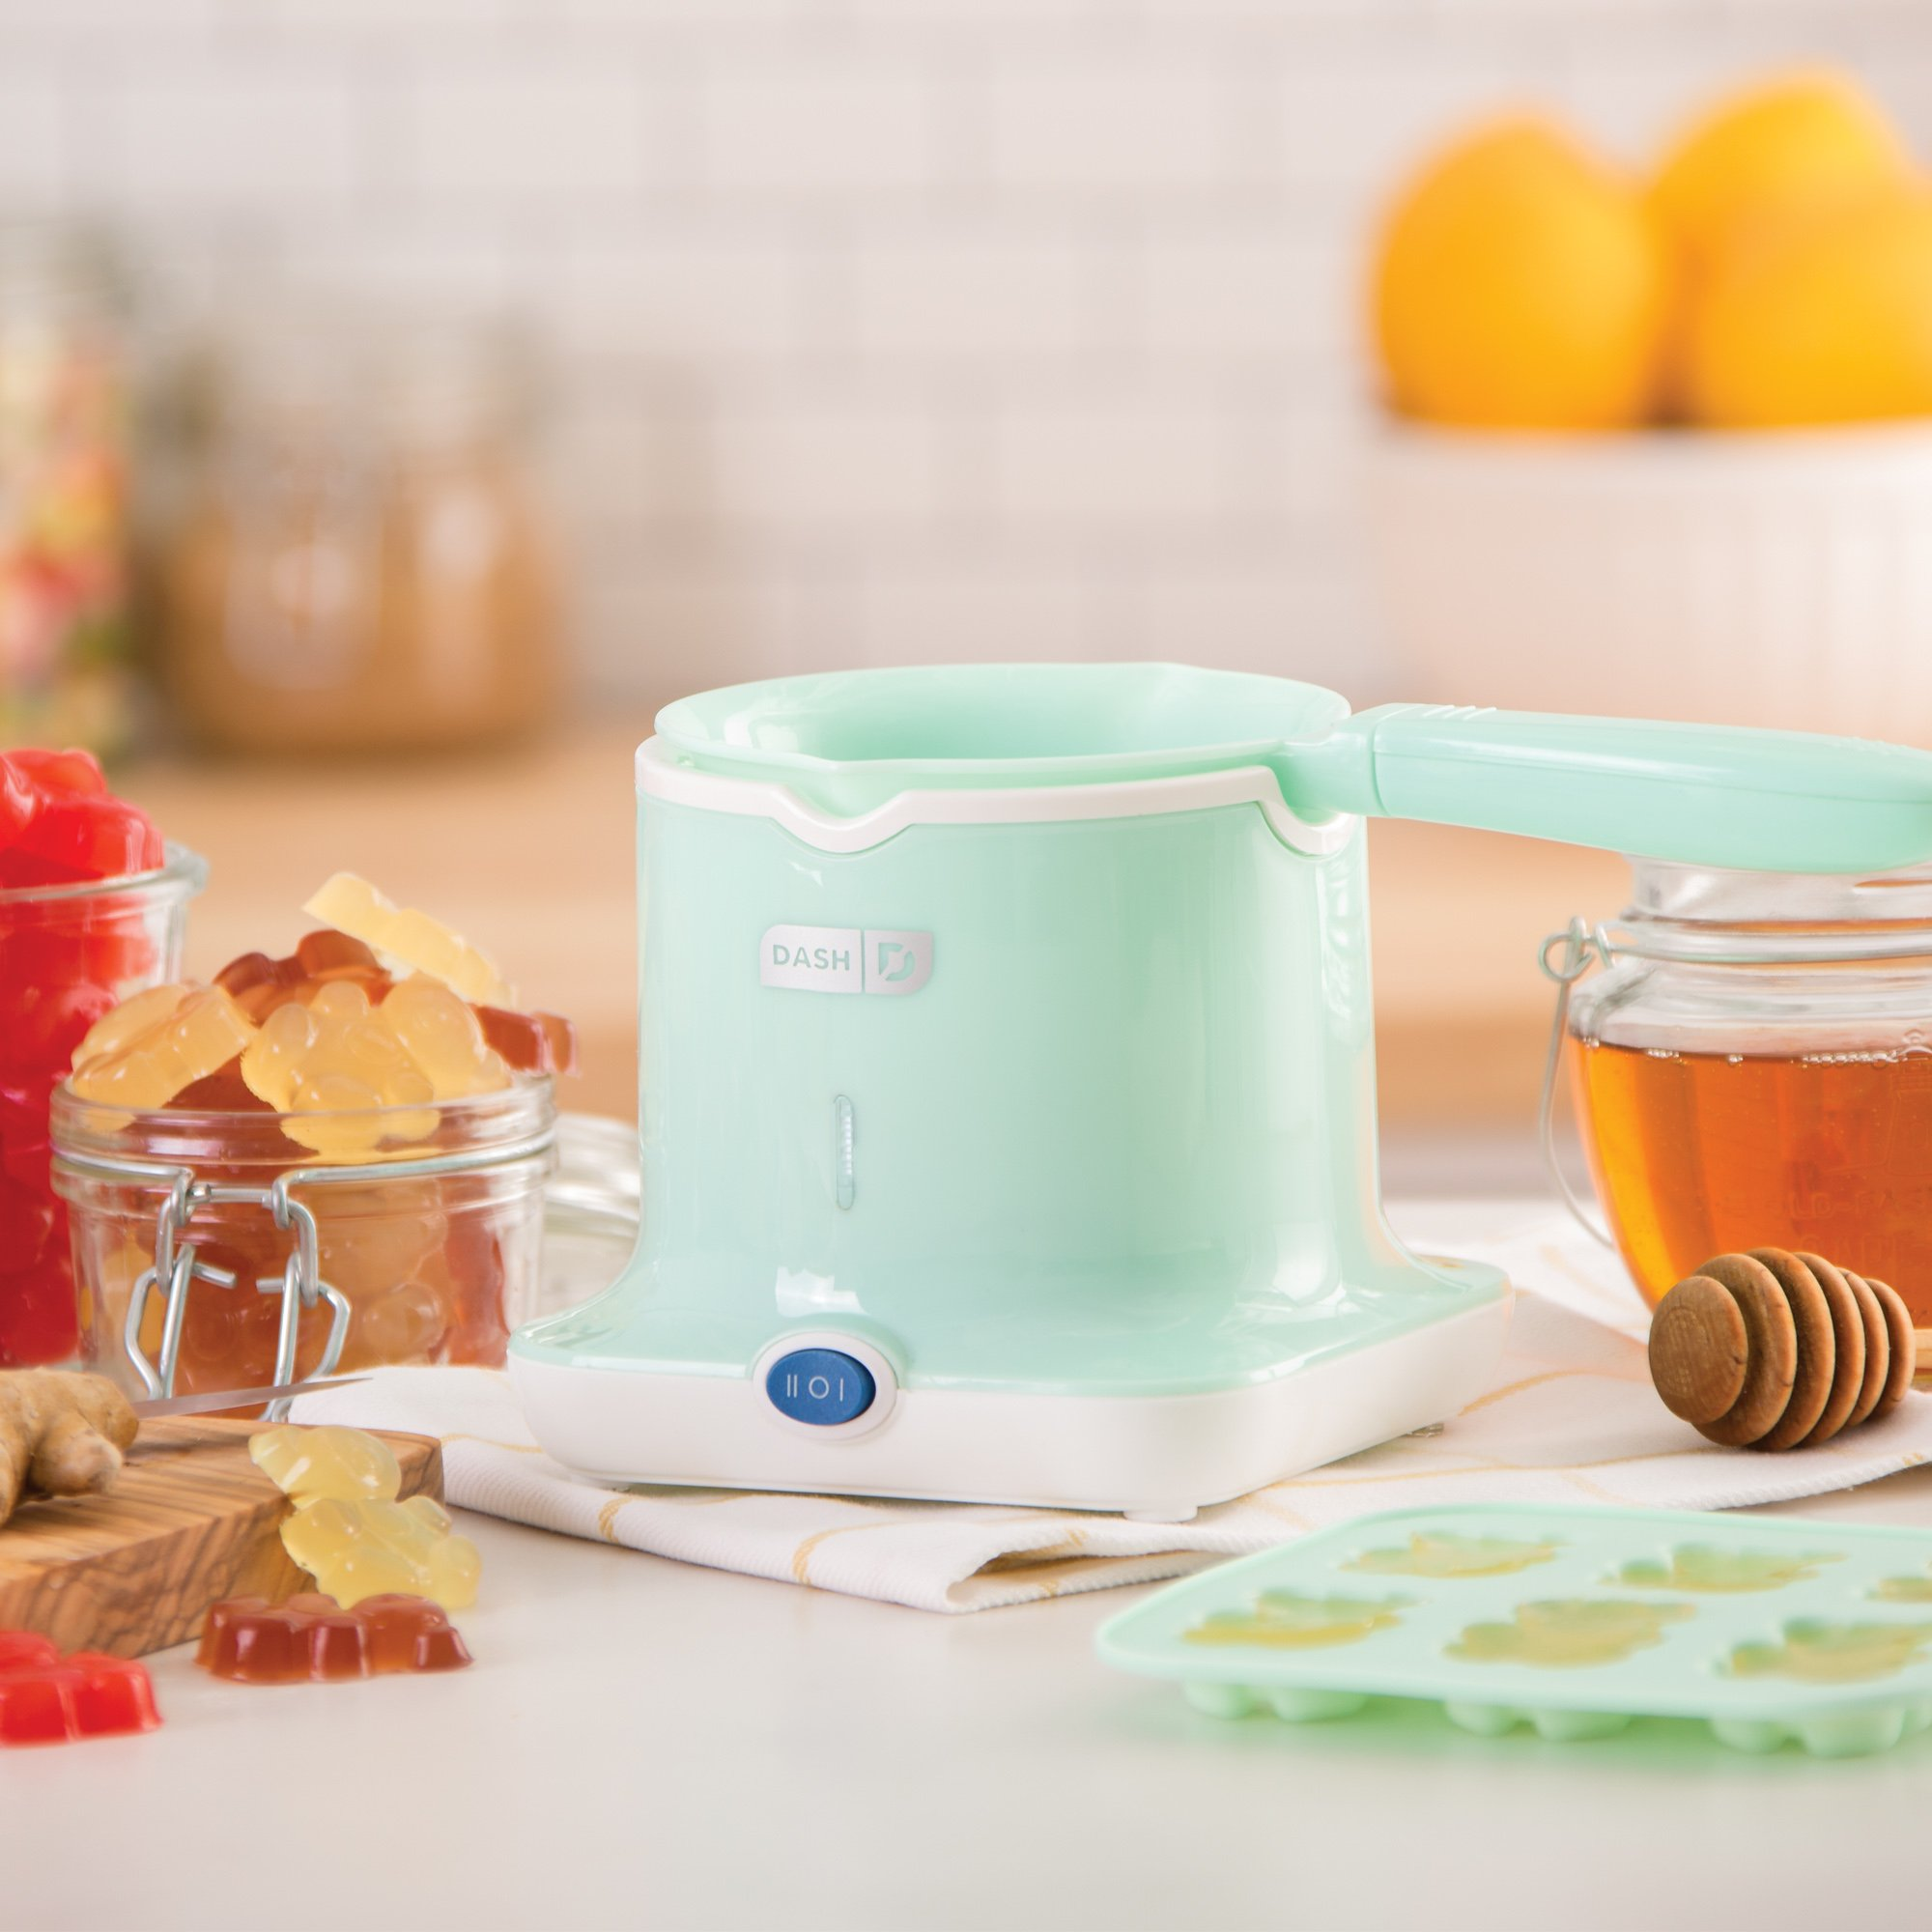 Dash DGCM001AQ Easy Candy Maker with High and Low Temperature Setting Chocolate, Gummies and More, Aqua by Dash (Image #2)